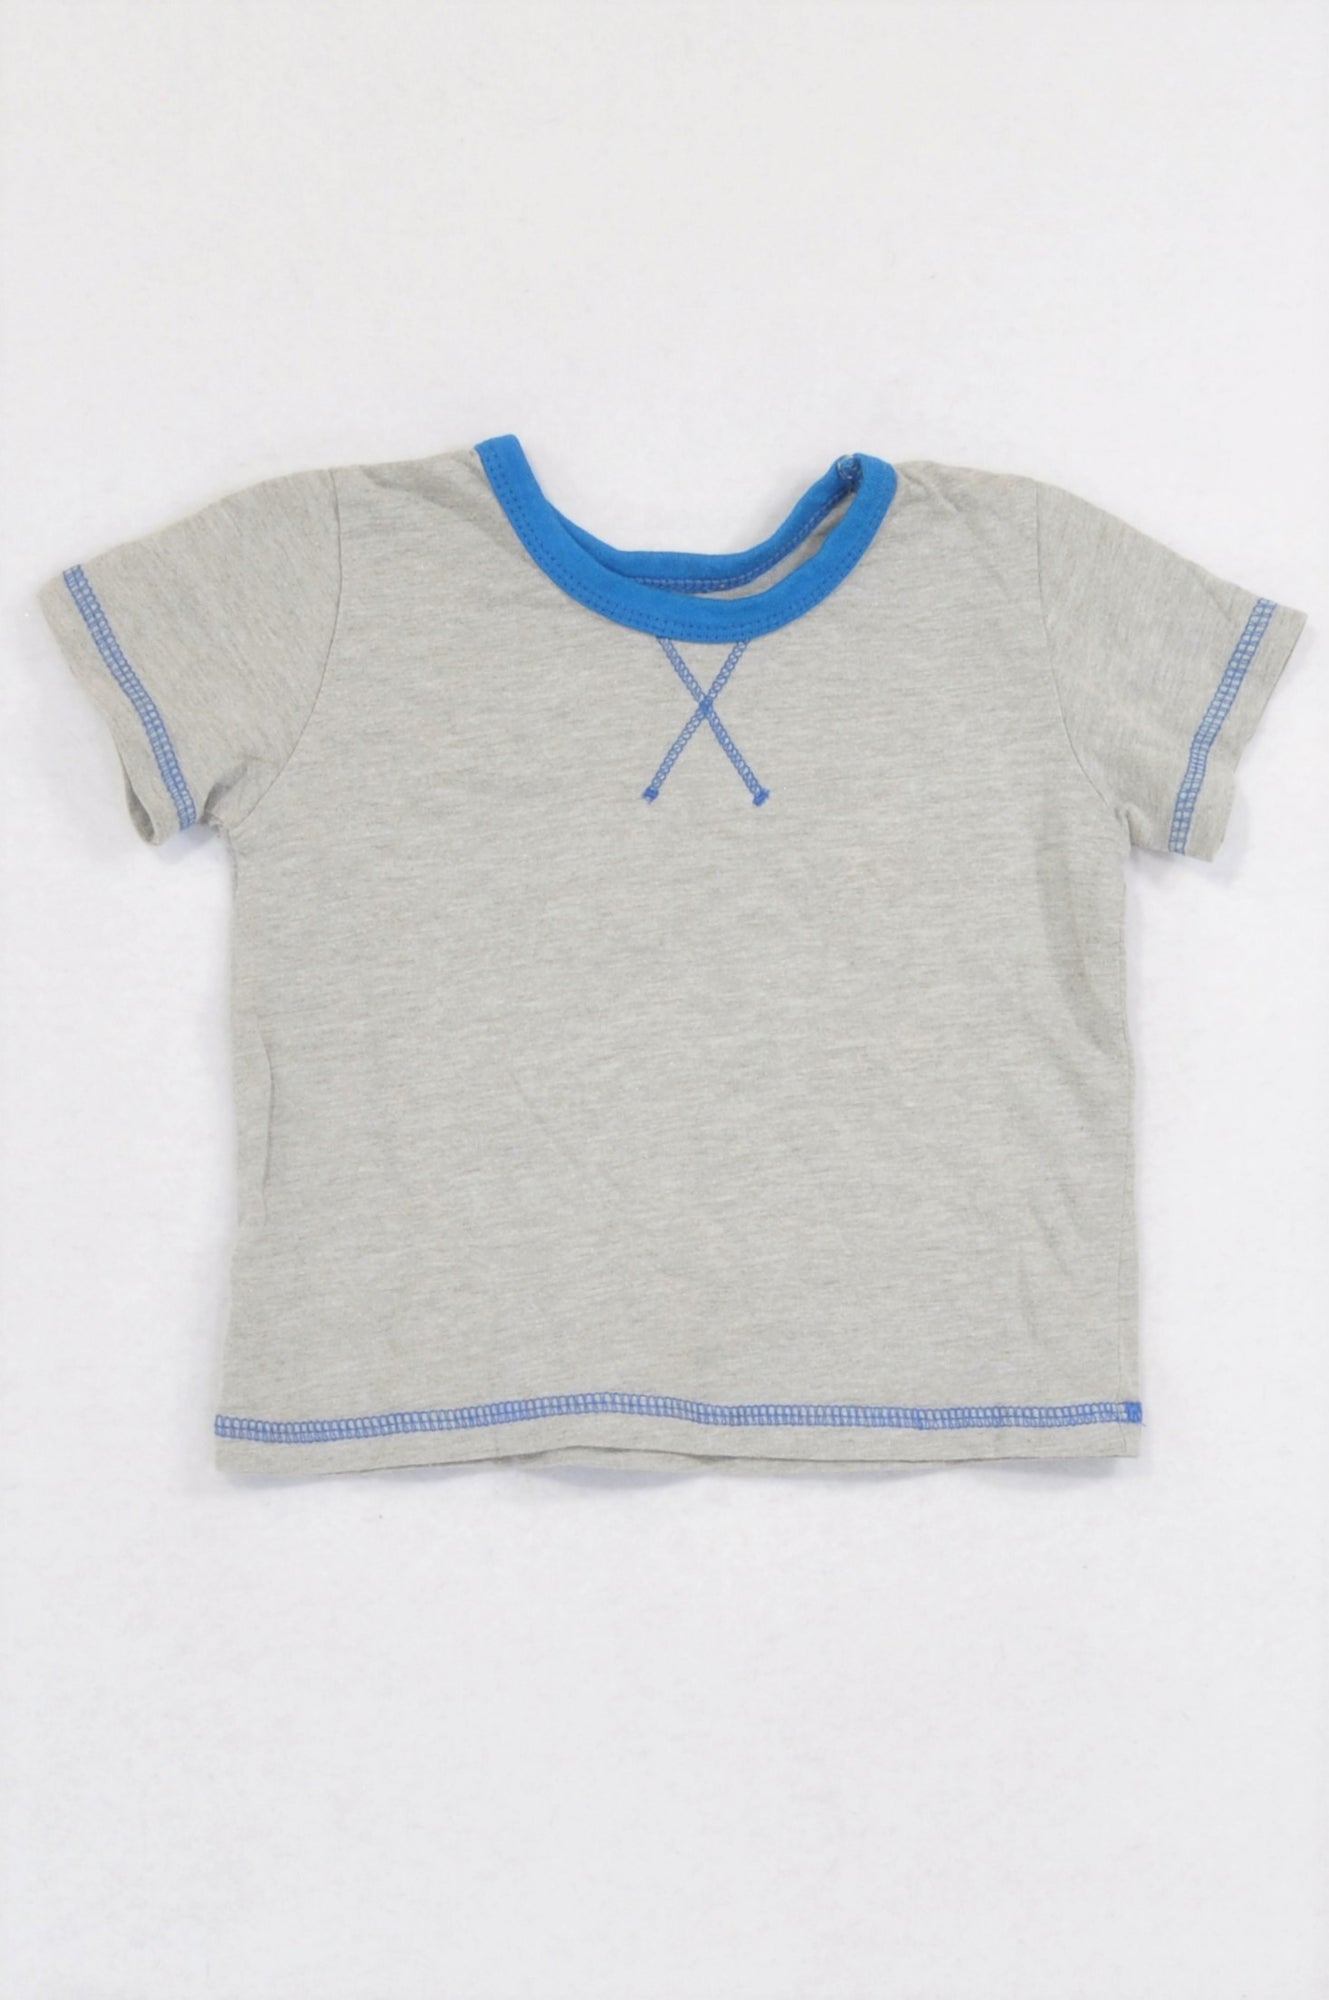 Woolworths Grey Blue Trim Neckline Stitch T-shirt Boys 6-12 months